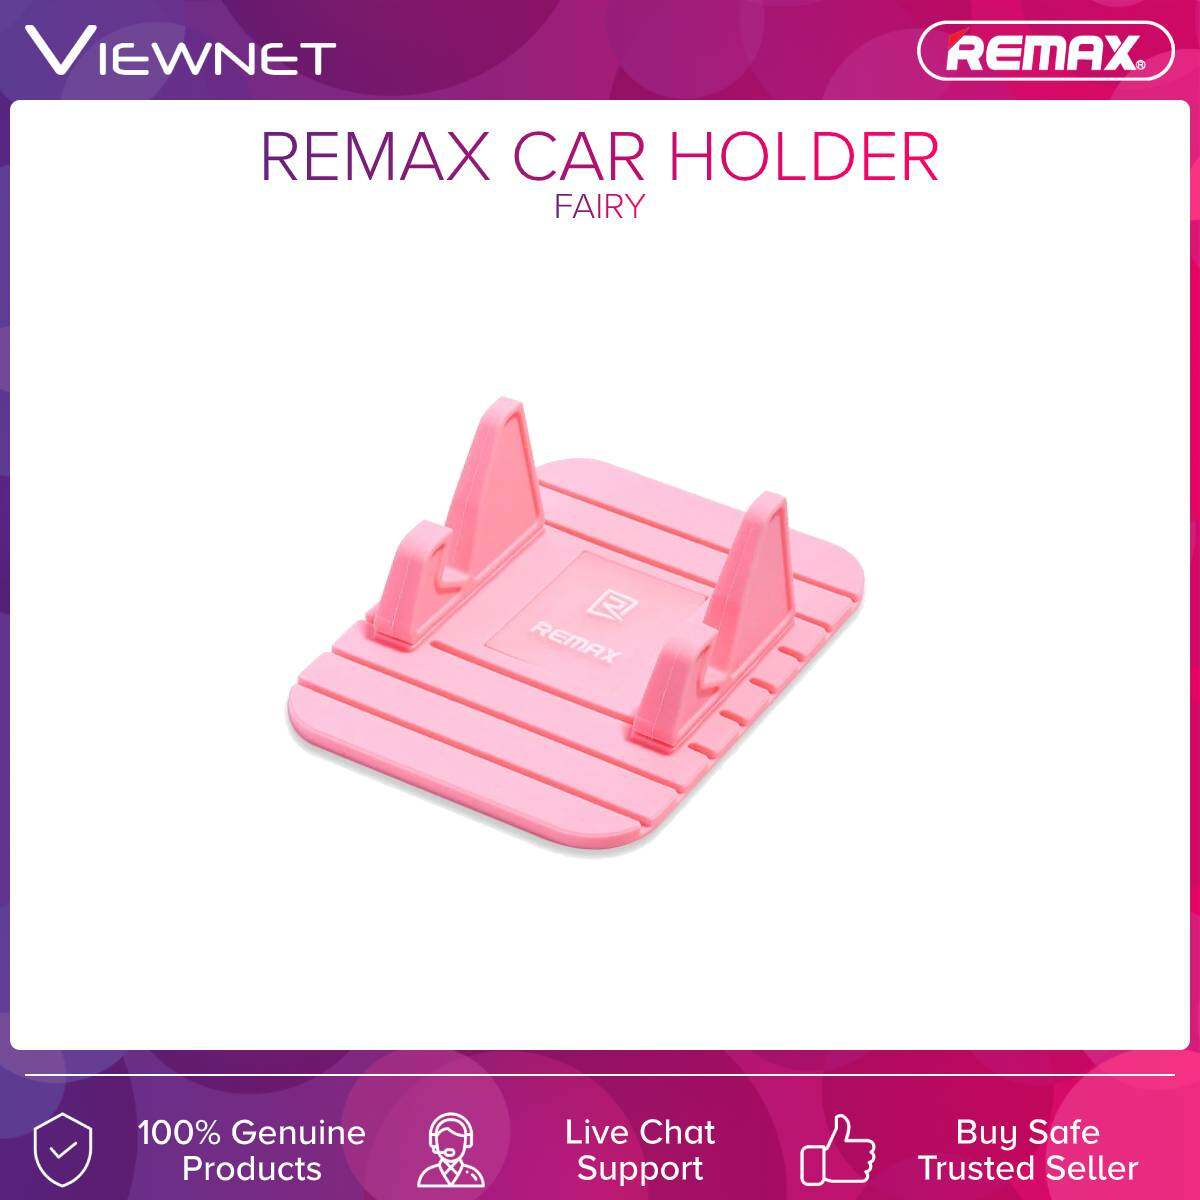 Remax Fairy Universal Car Holder